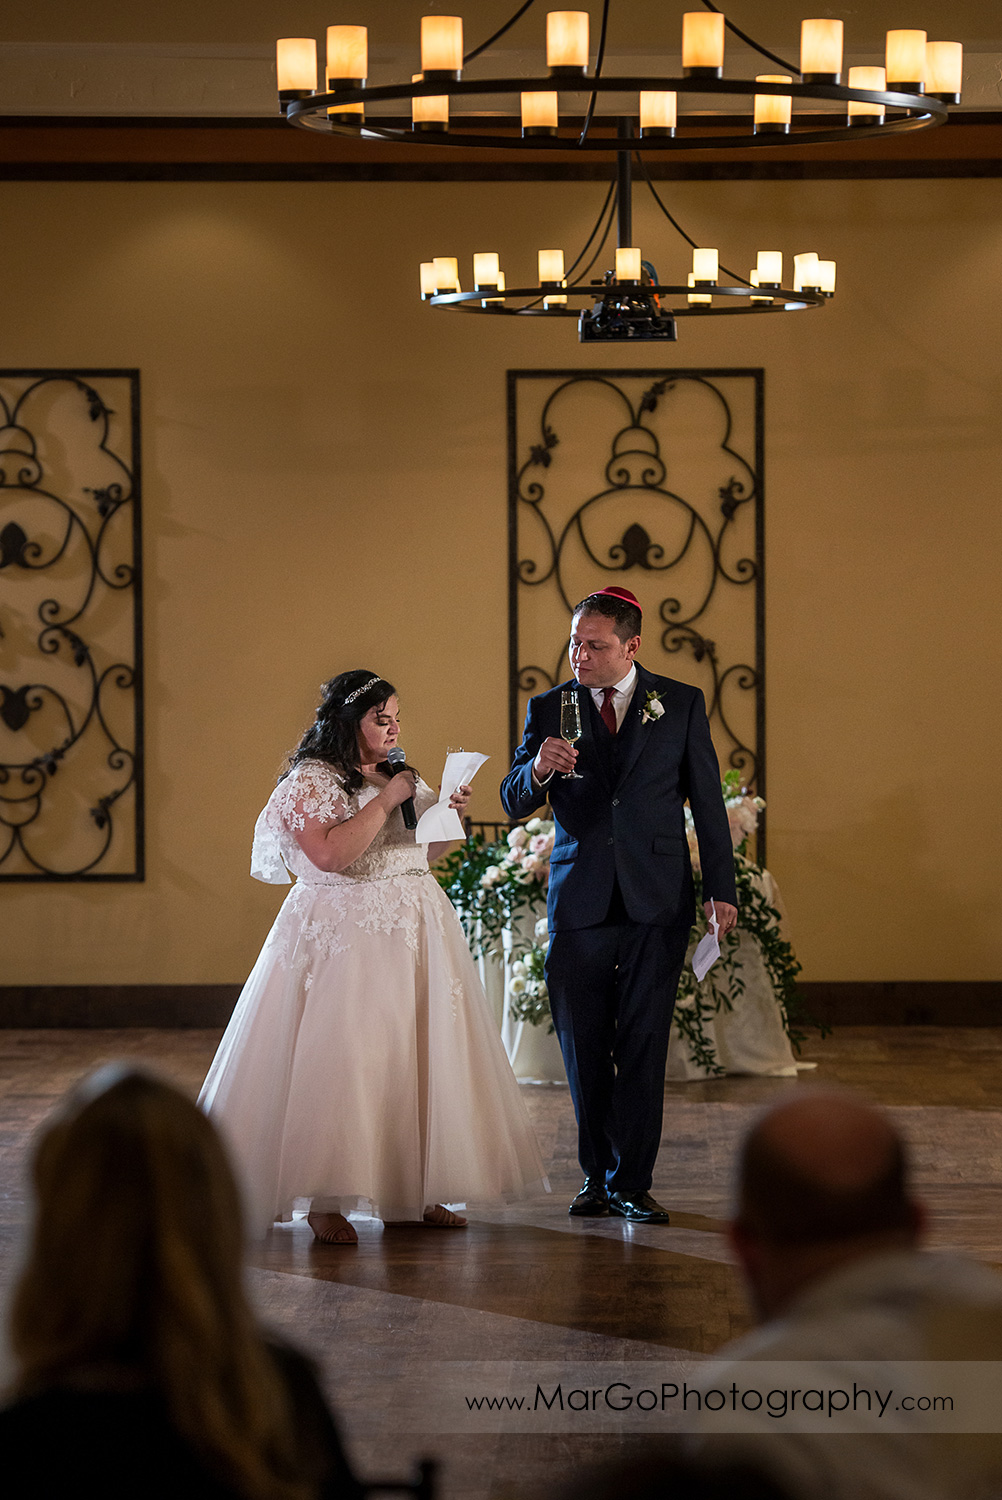 jewish bride and groom welcoming guests during wedding reception at Livermore Garre Vineyard and Winery